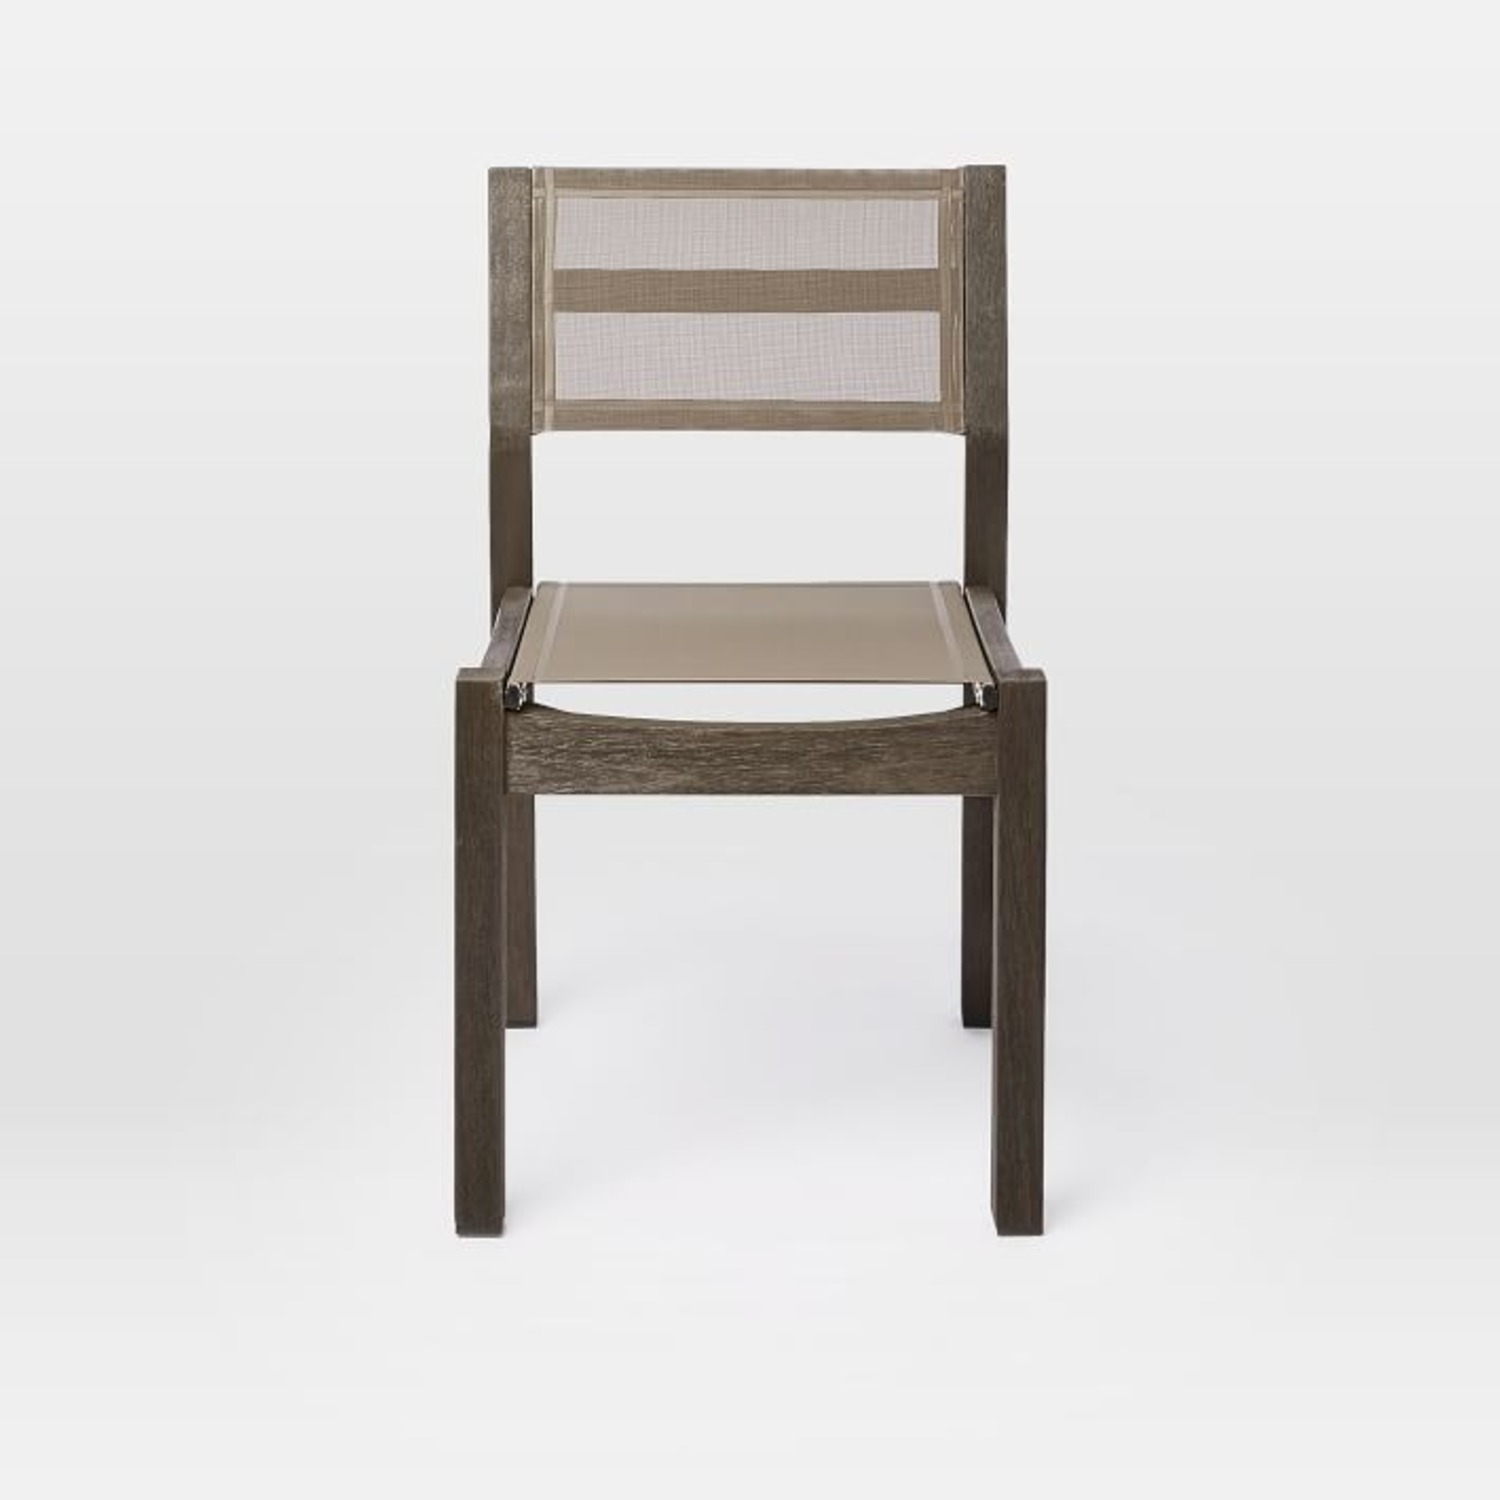 West Elm Portside Textiline Chair, Weathered Cafe - image-3